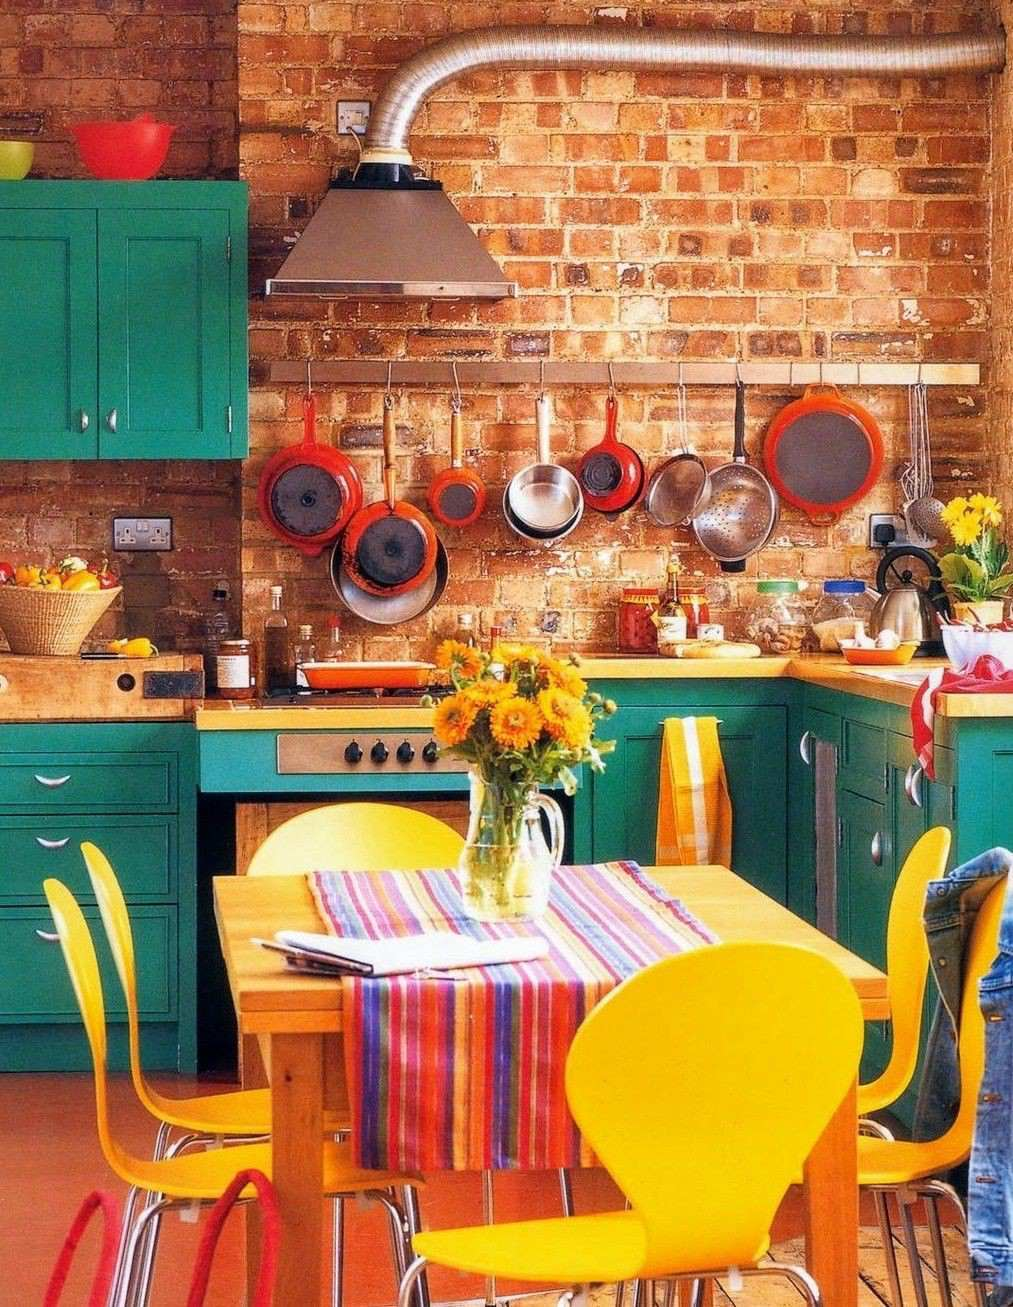 8. Teal Cabinets With Bright Yellow Accents